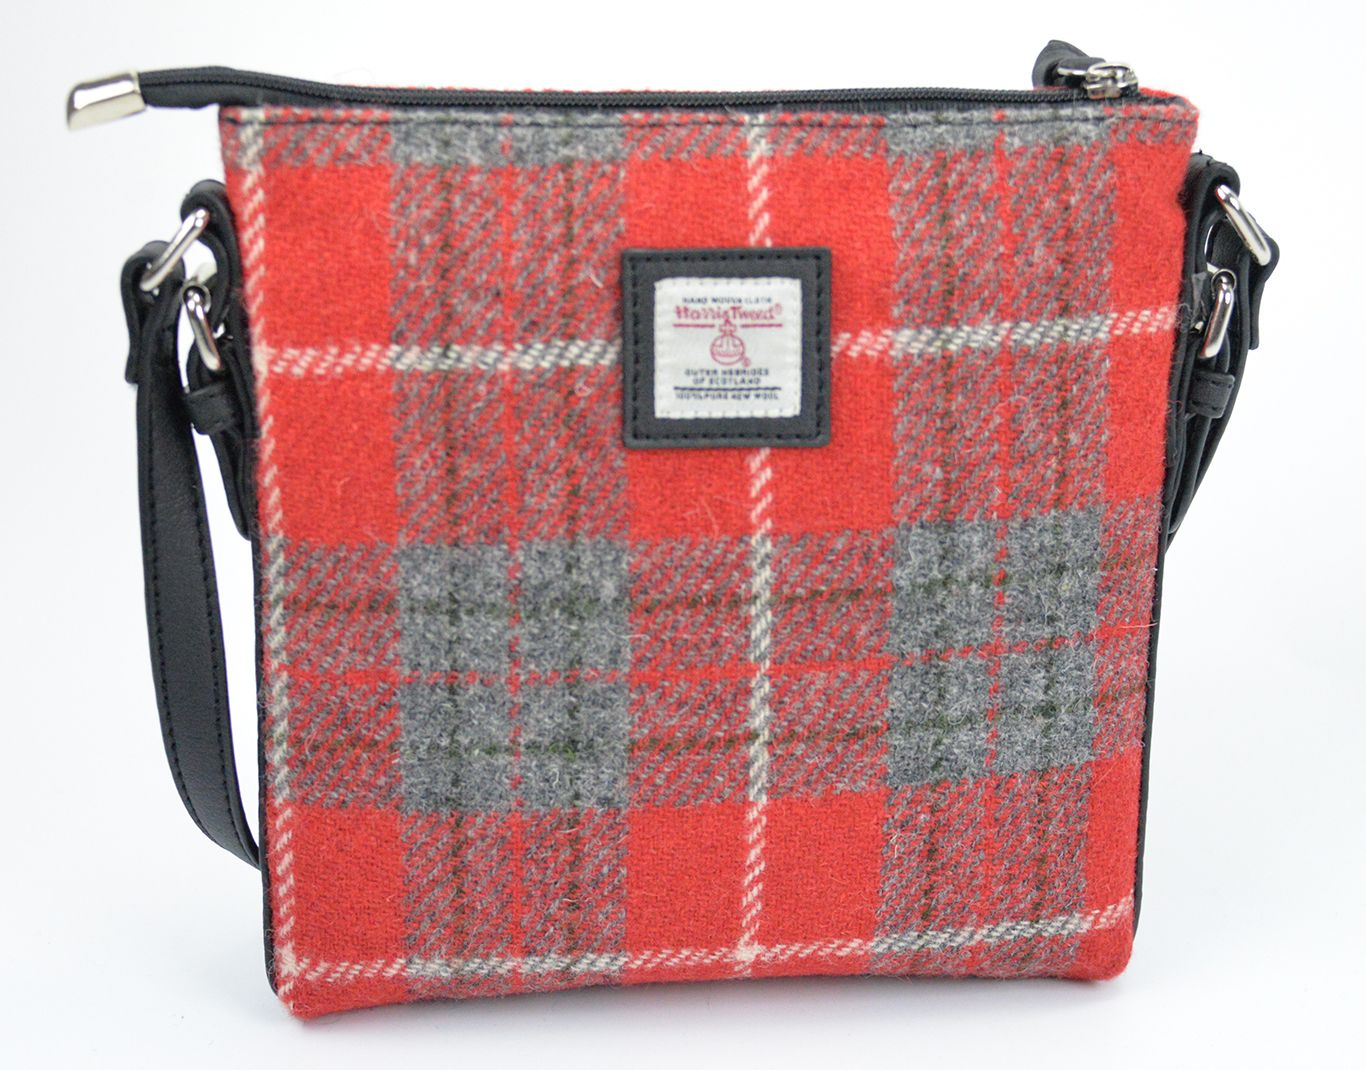 Harris Tweed Ladies Cross-body Bag